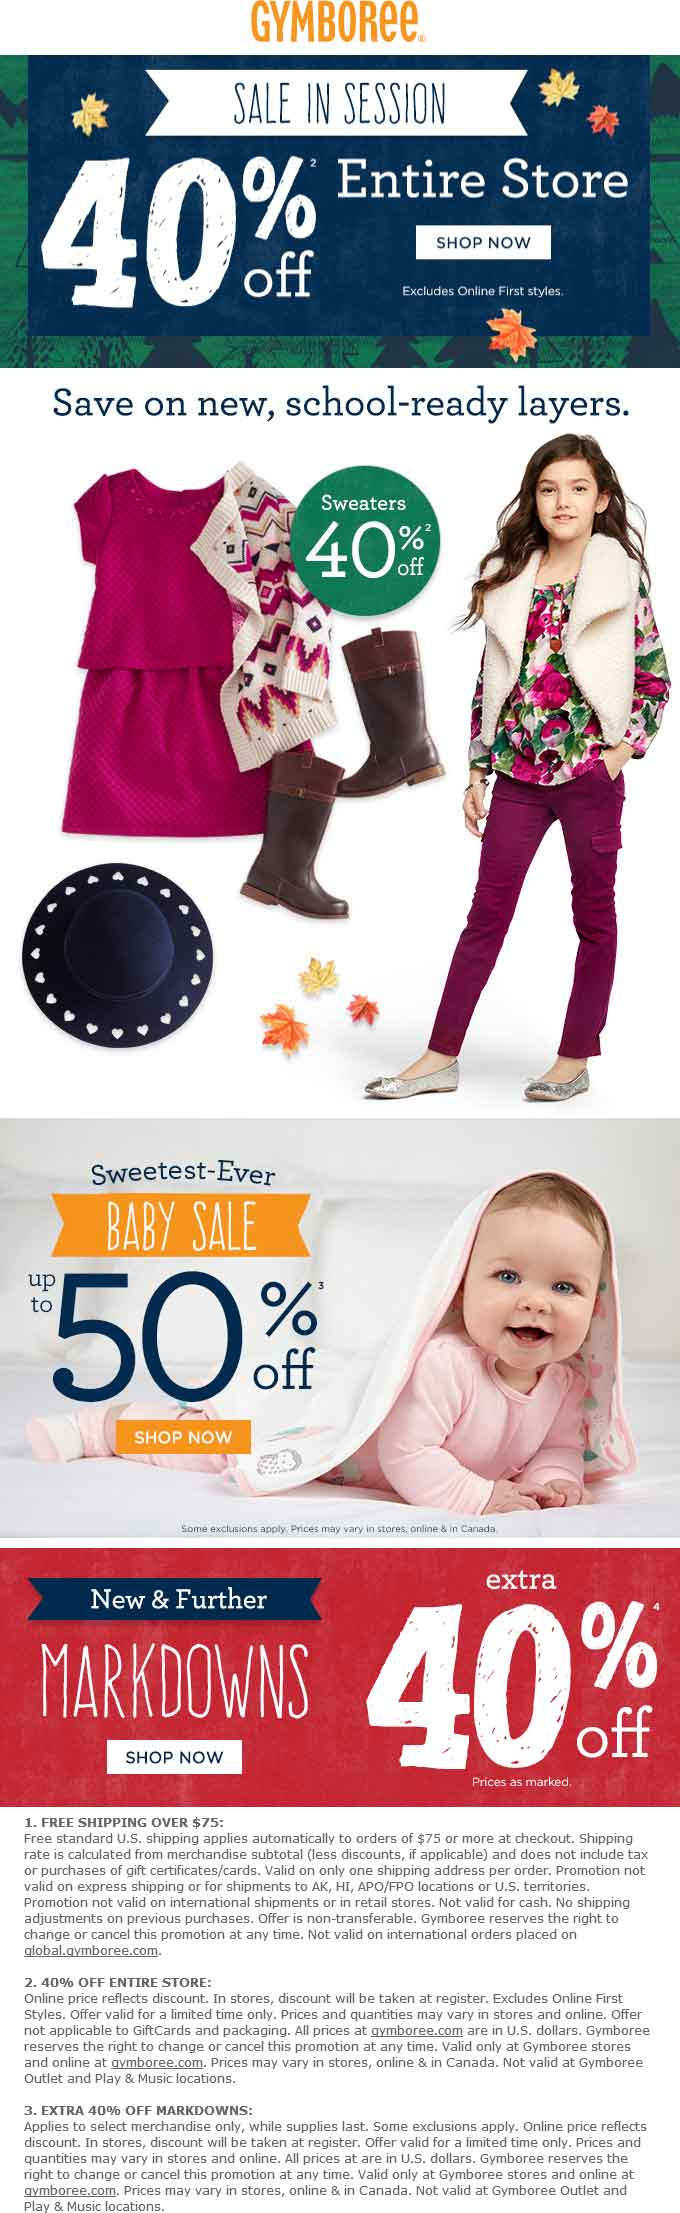 Gymboree Coupon January 2017 40% off everything at Gymboree, ditto online